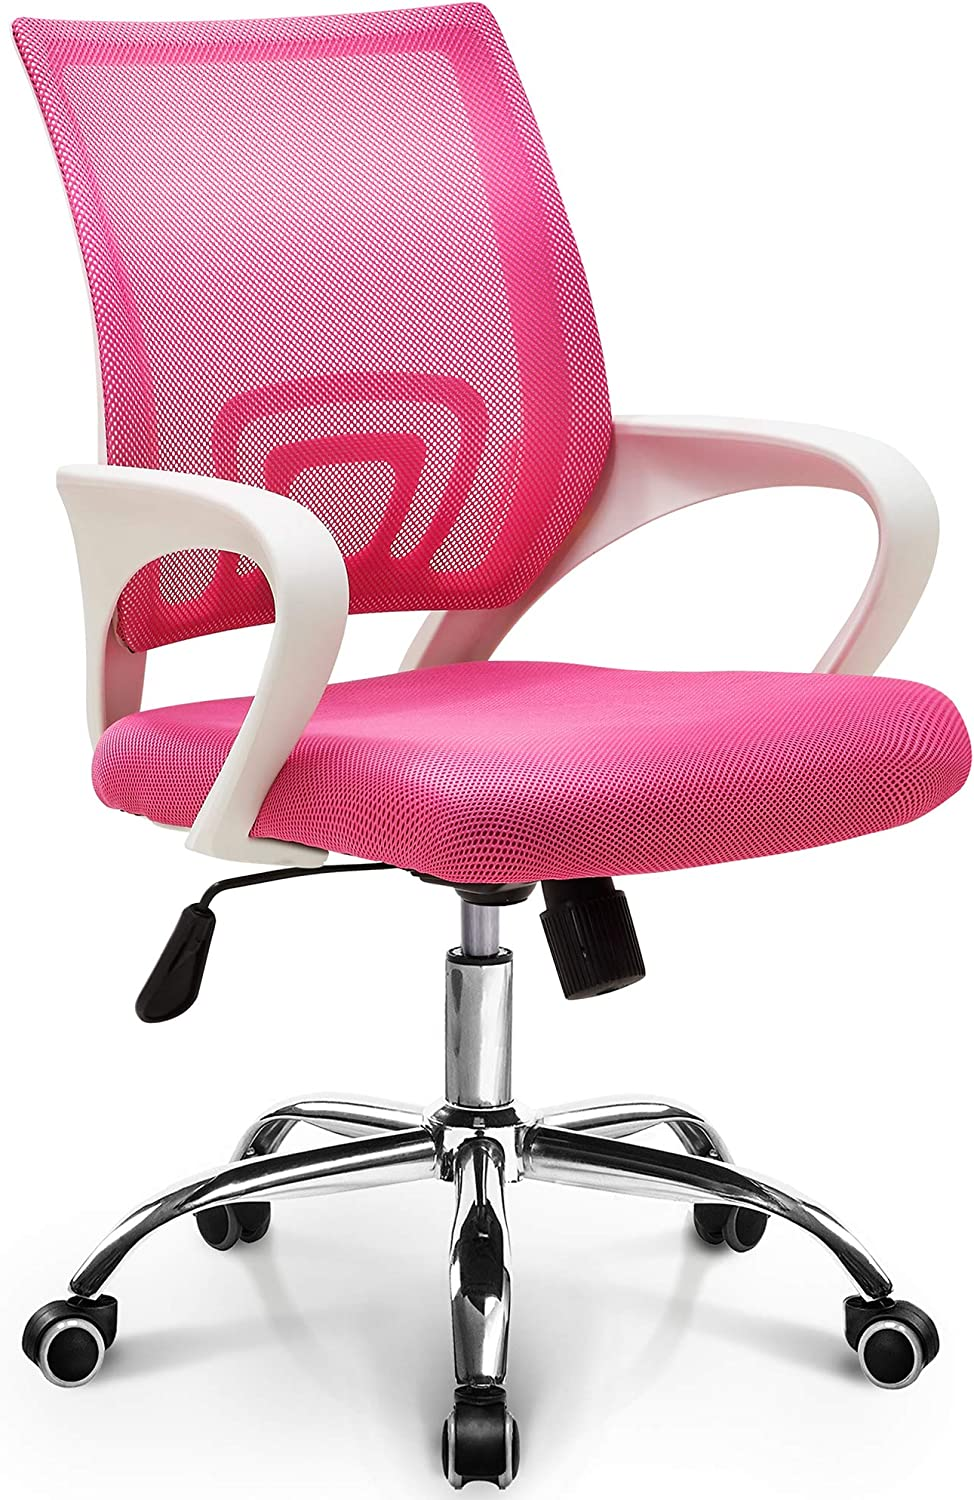 Amazon Com Neo Chair Office Chair Computer Desk Chair Gaming Ergonomic Mid Back Cushion Lumbar Support With Wheels Comfortable Pink Mesh Racing Seat Adjustable Swivel Rolling Home Executive Furniture Decor